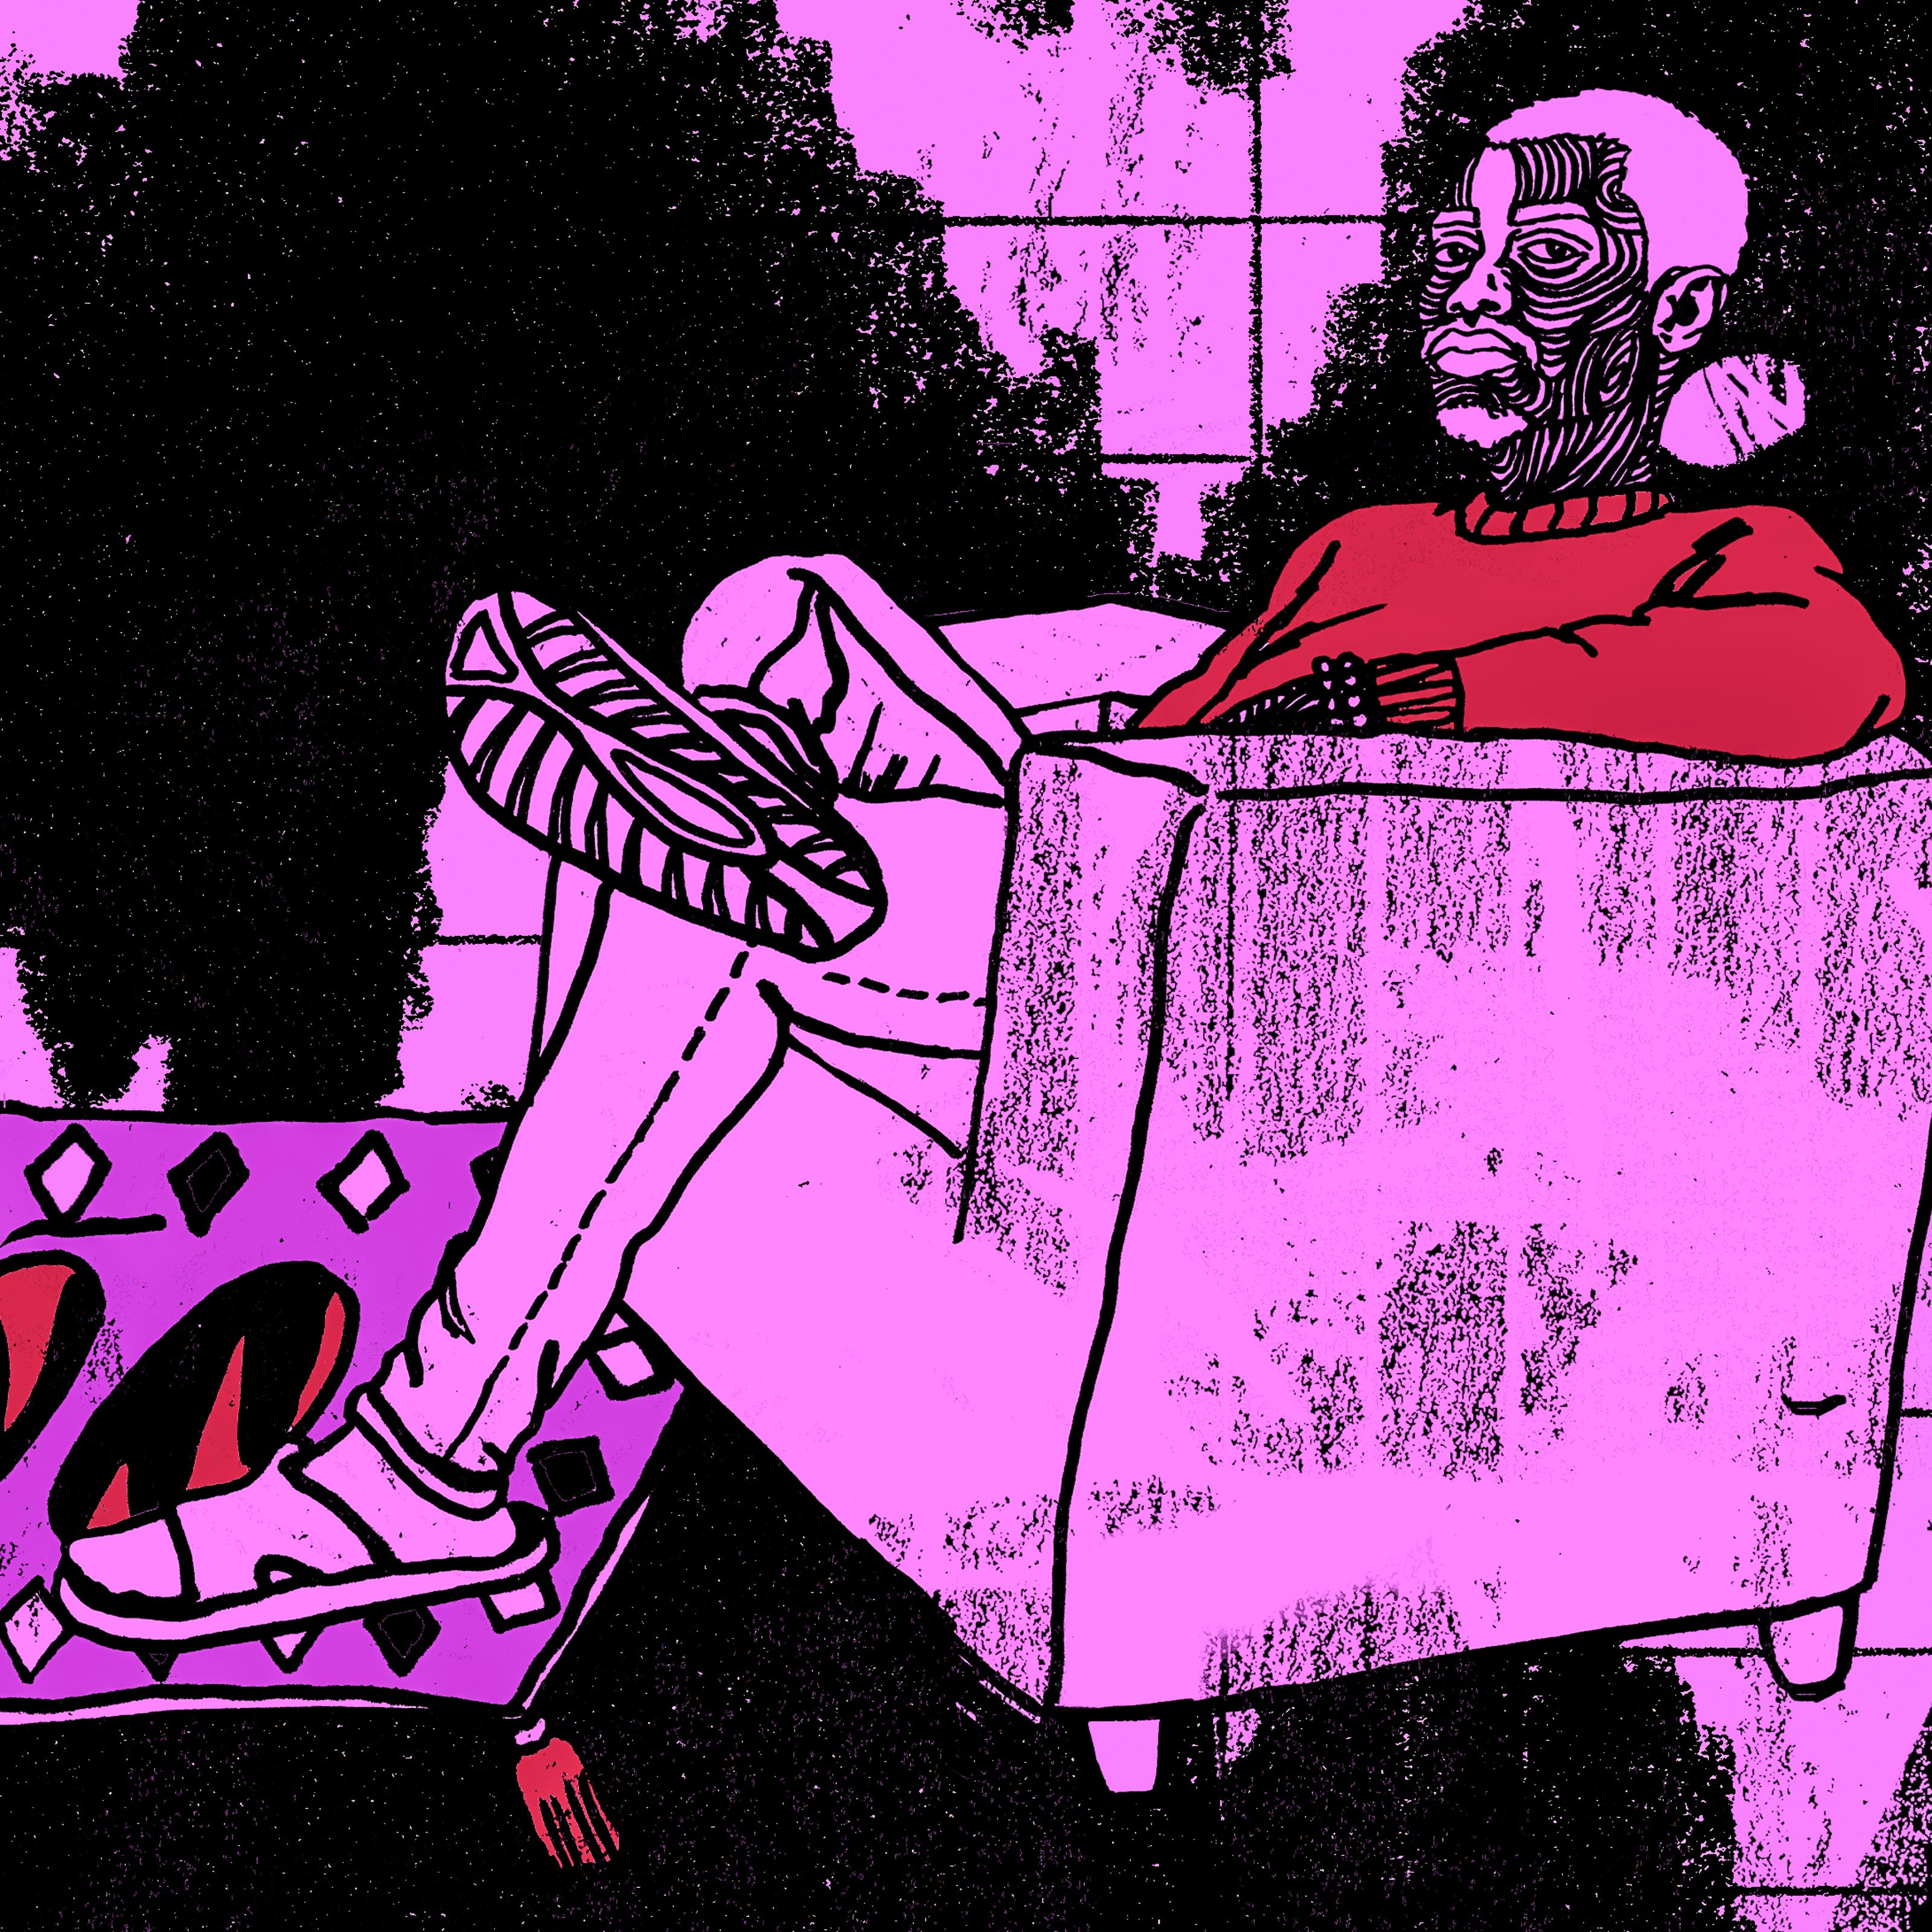 Illustration in black, purple and red tones, showing a person sitting in an armchair in a room. At their feet is a ruckled rug with things hidden under it. To the left is a small bookcase and house plant.